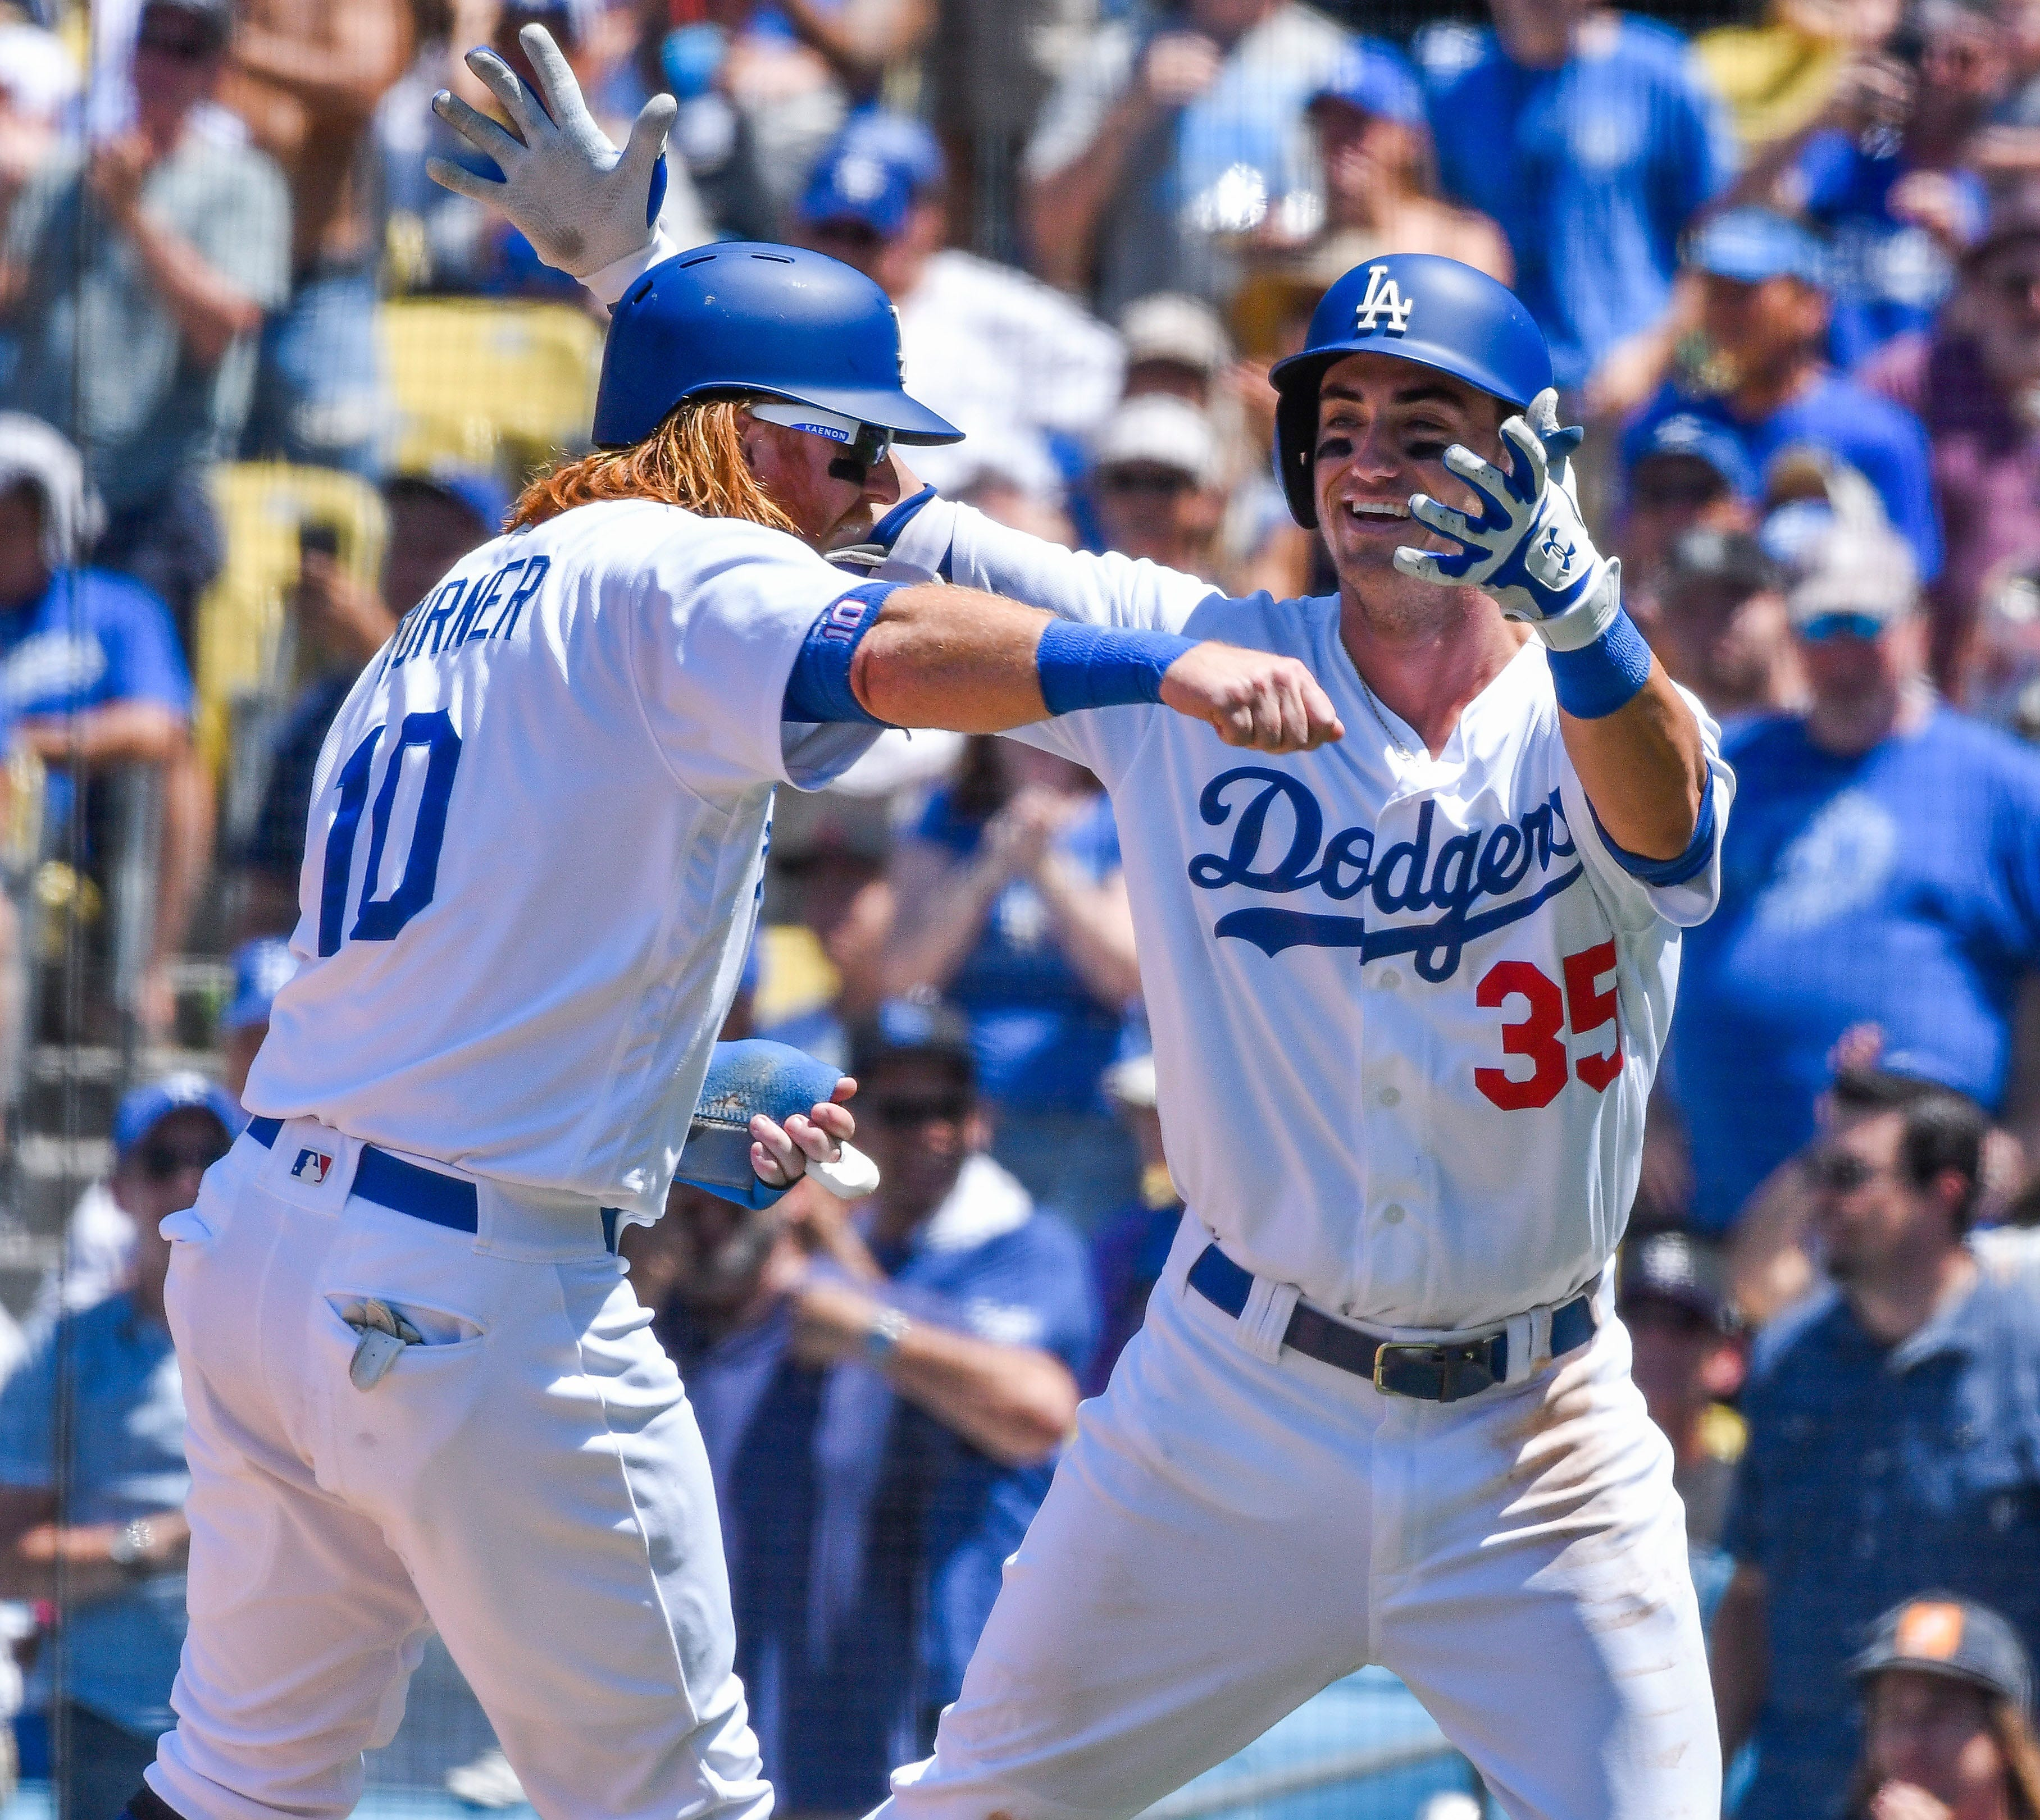 636340731360470856-USP-MLB--Colorado-Rockies-at-Los-Angeles-Dodgers MLB home run fever: Five more crazy facts